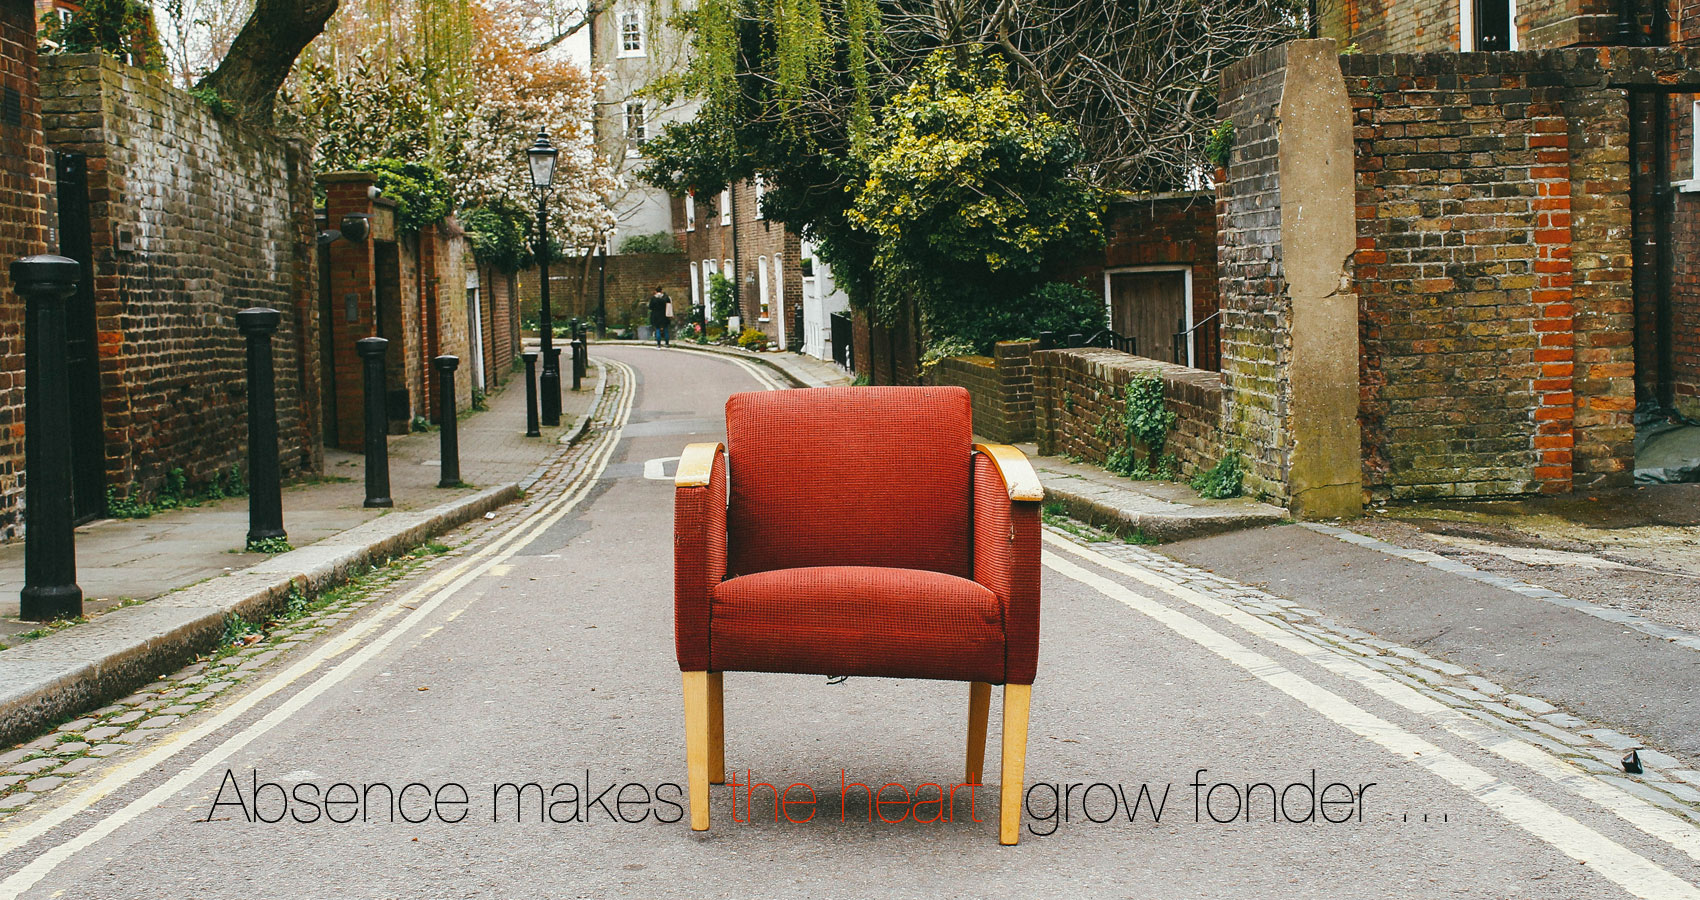 Absence Makes The Heart Grow Fonder ... written by Anne G at Spillwords.com